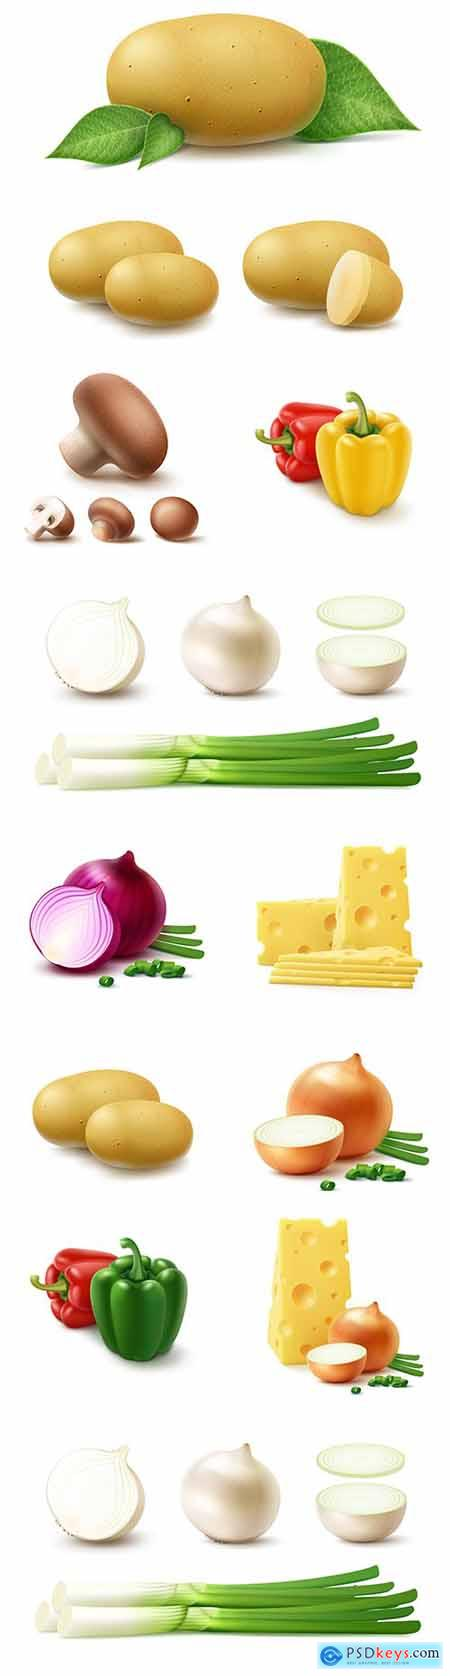 Vegetables whole and chopped 3d realistic illustrations